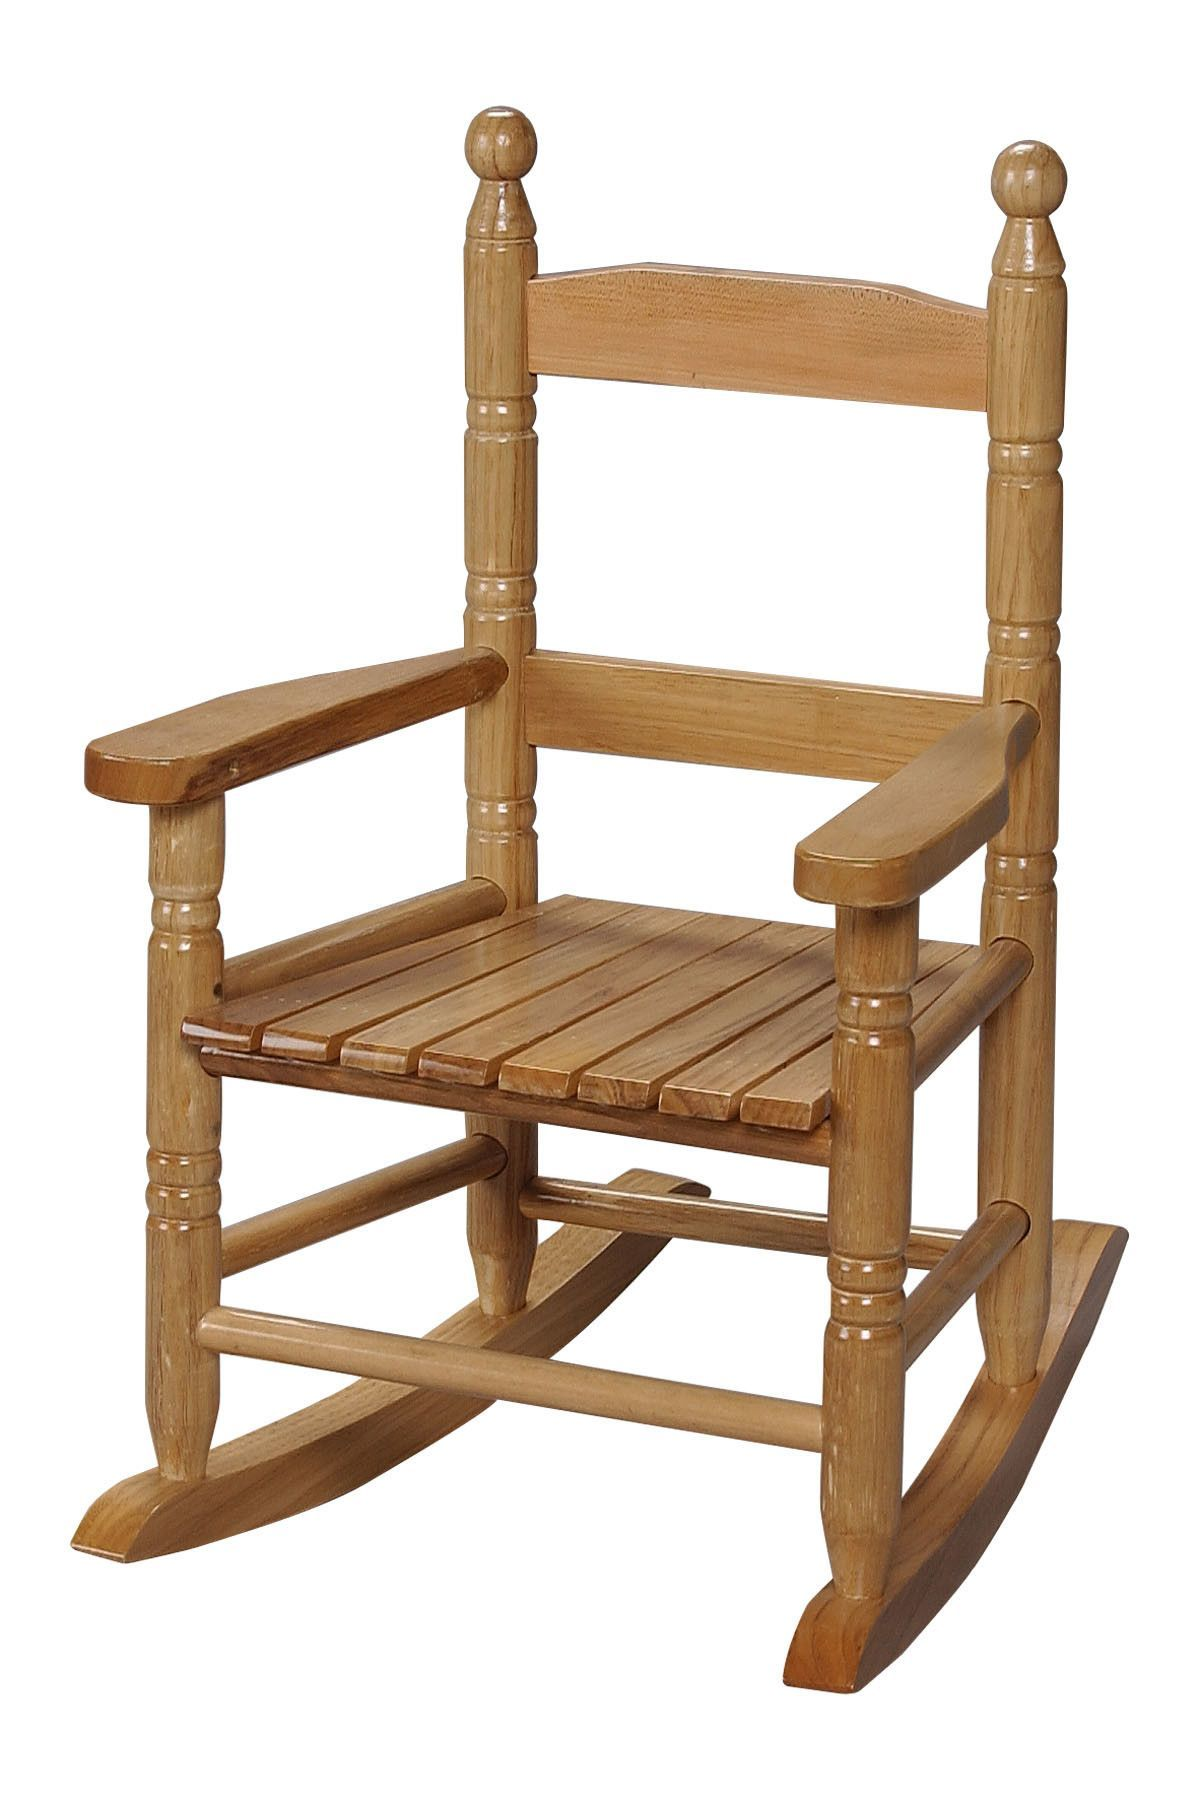 Childs Slat Rocking Chair Refinish Rocking Chair Chair Wooden